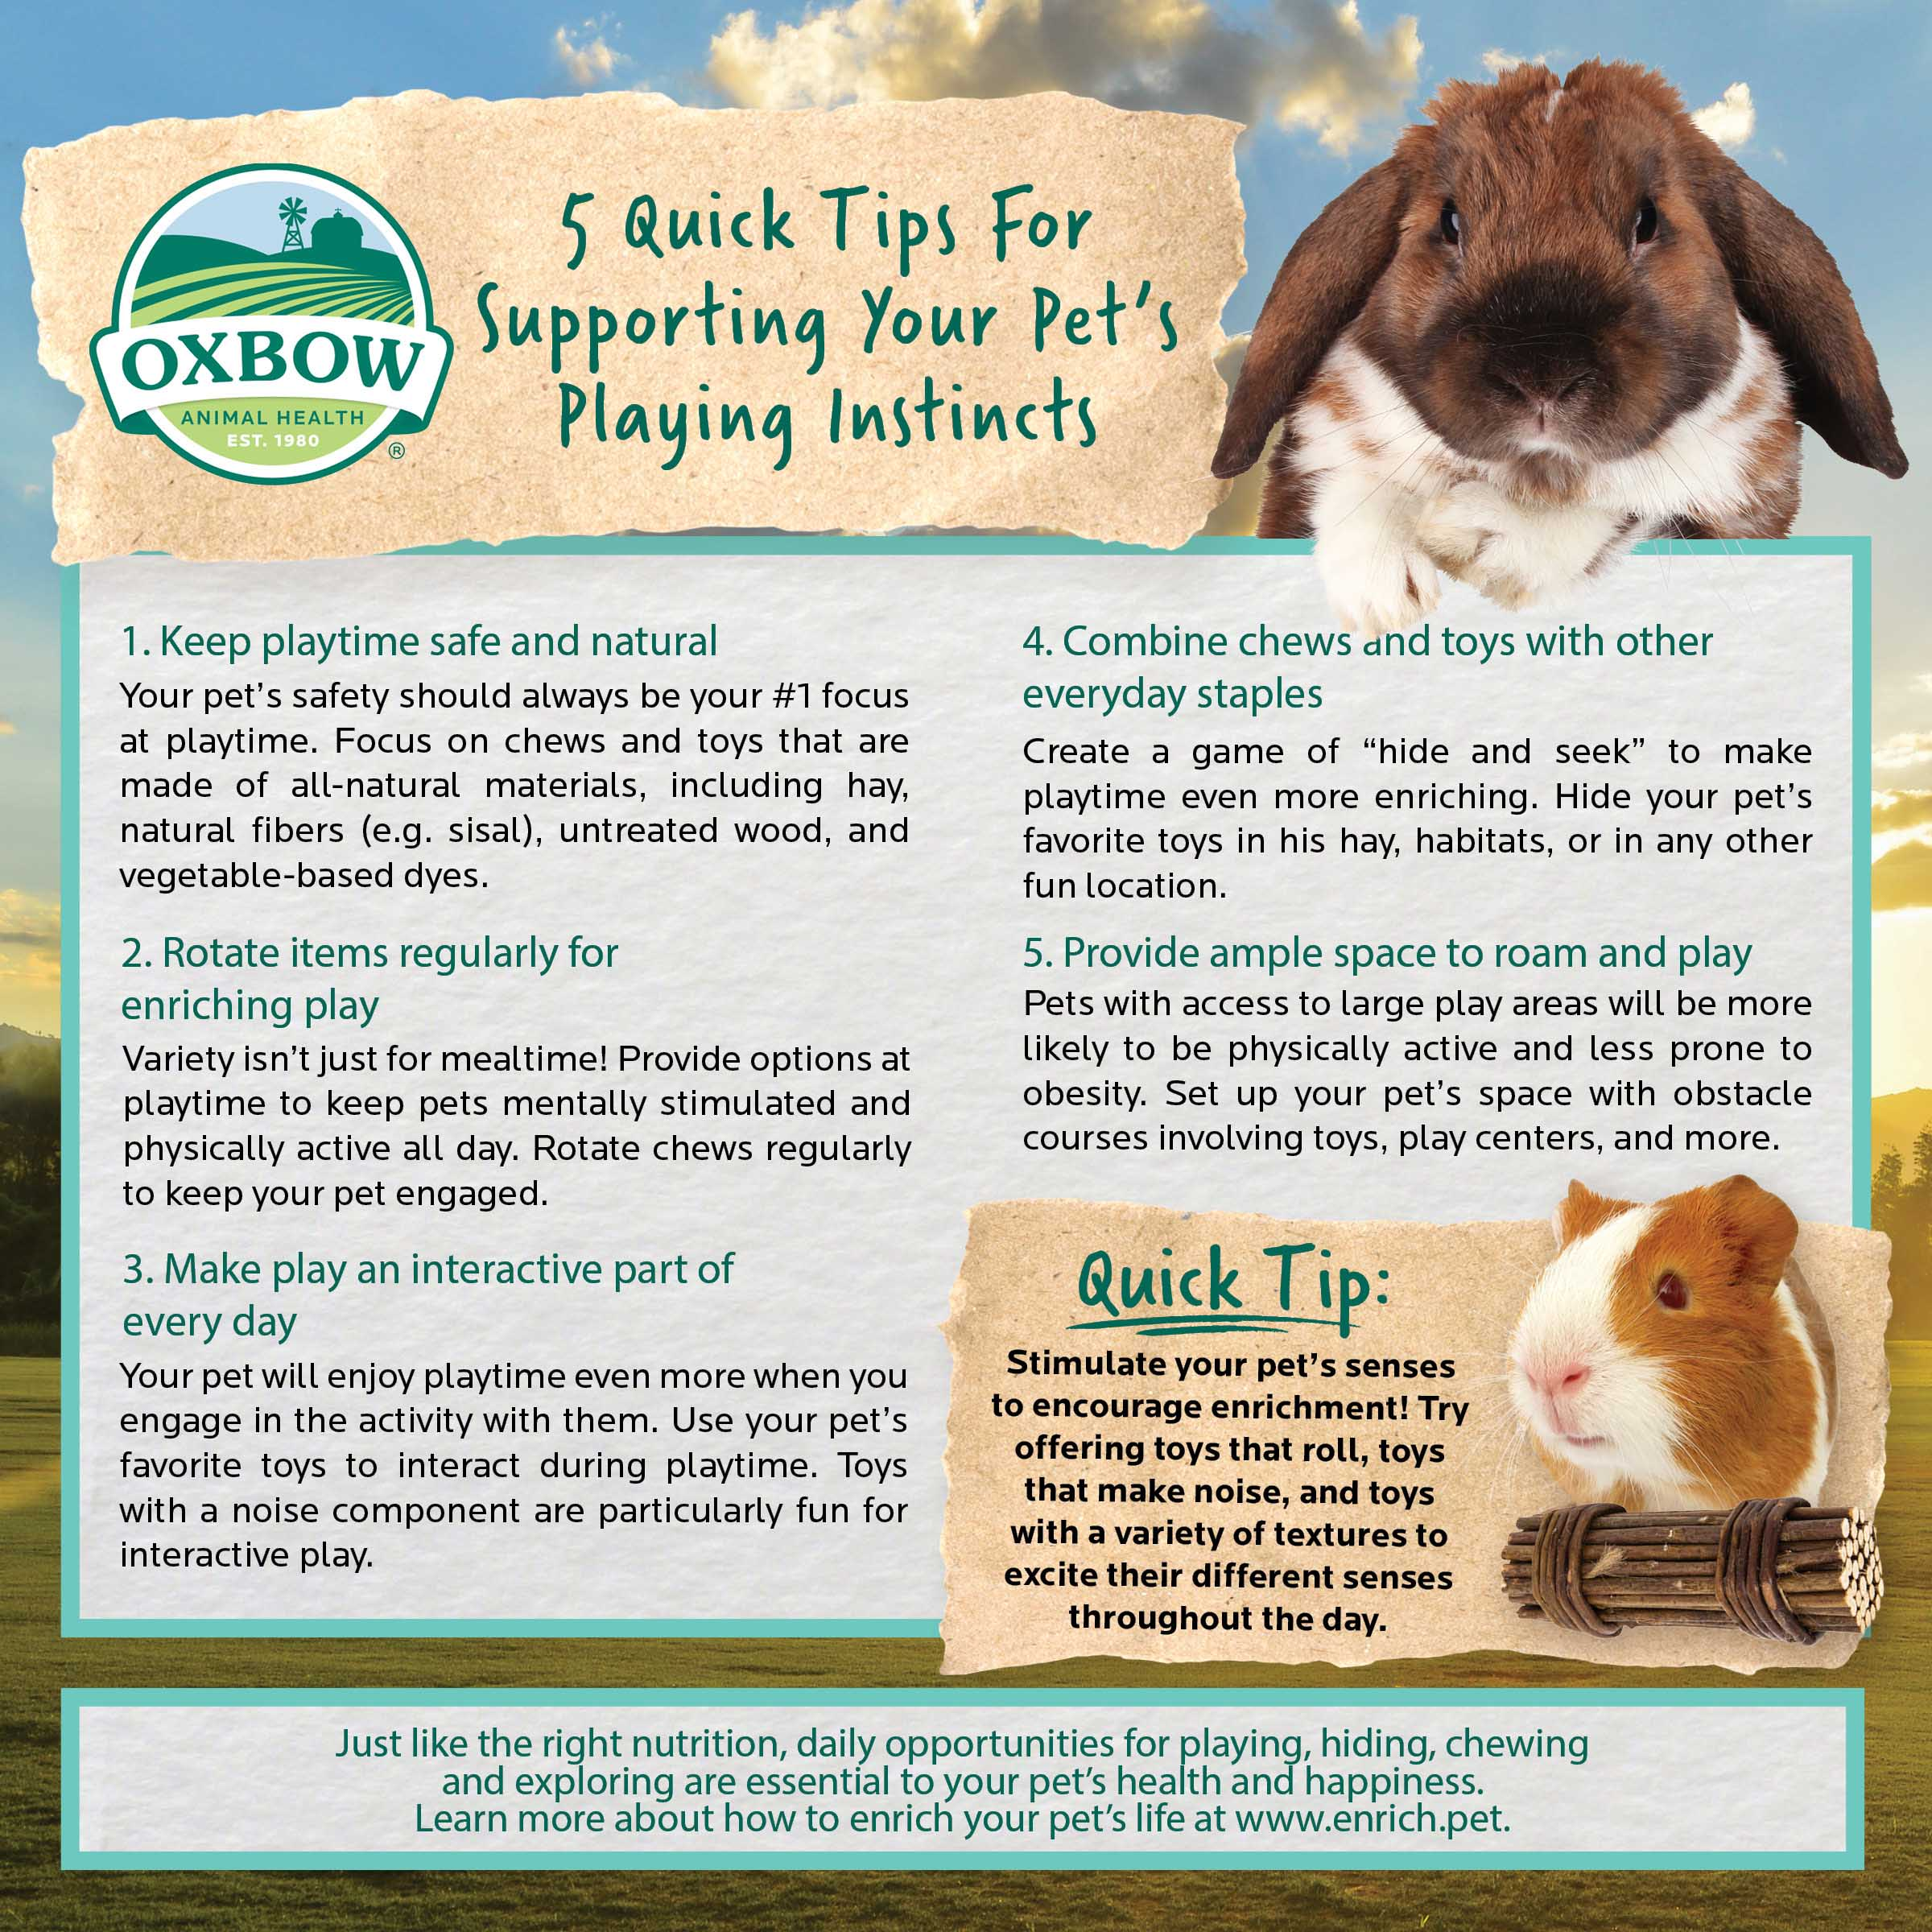 5 Quick Tips for Supporting Your Pet's Playing Instincts